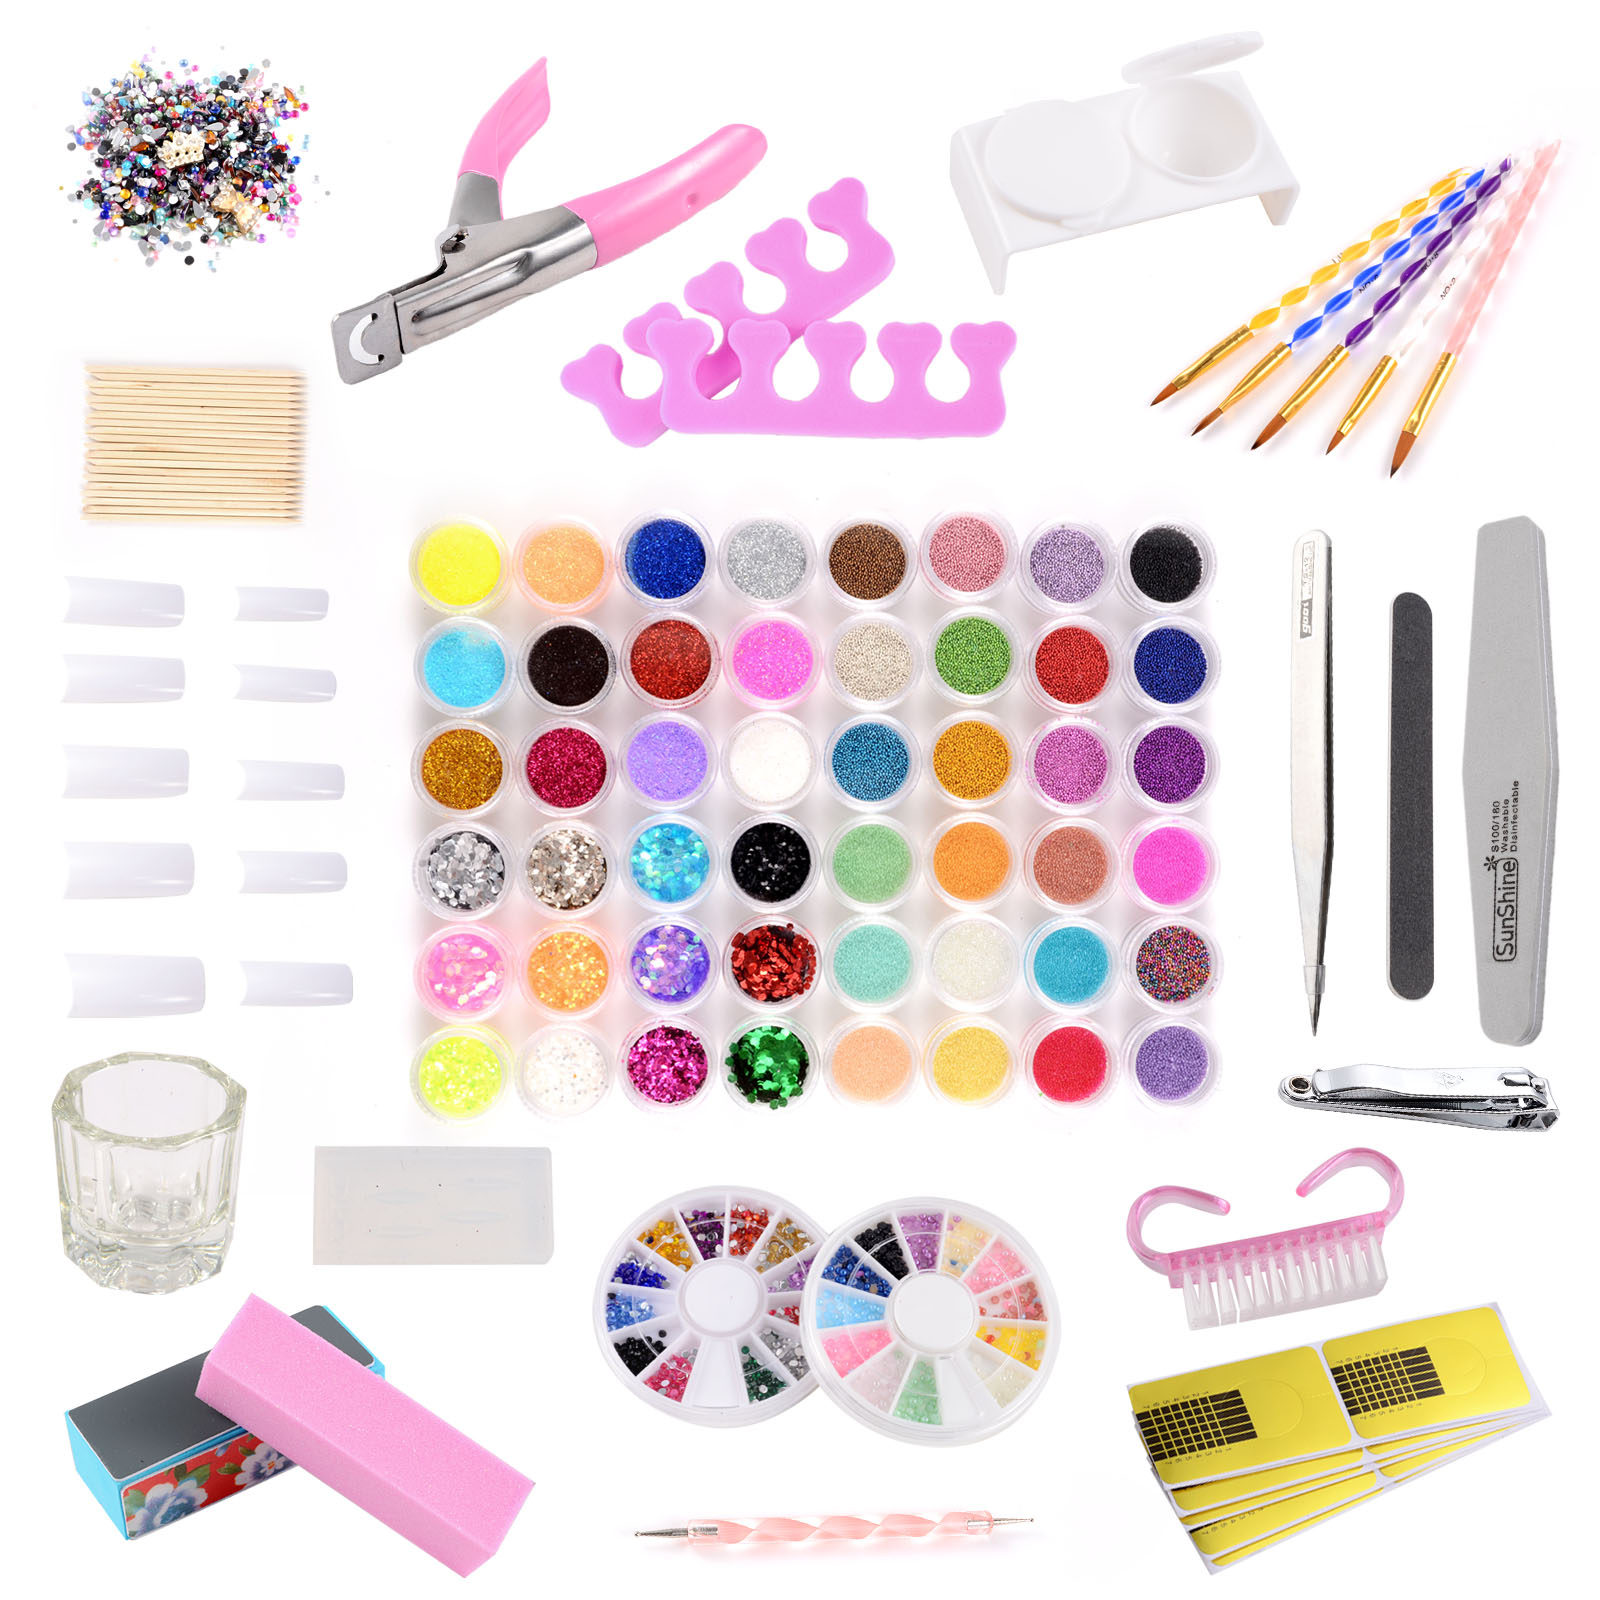 48tlg acryl starter set nageltips stra stein glitter pinsel feile schablonen ebay. Black Bedroom Furniture Sets. Home Design Ideas